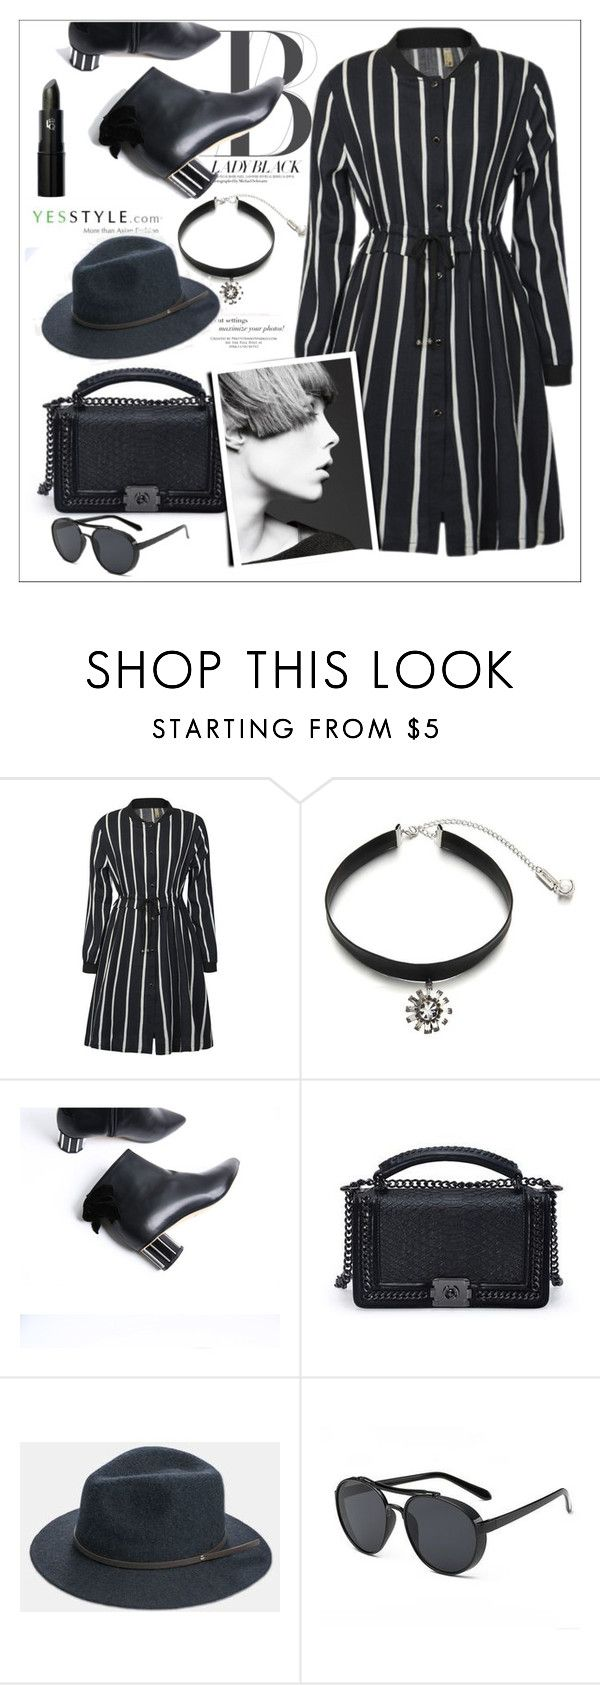 """Yesstyle #6 - Fashion"" by biange ❤ liked on Polyvore featuring Ticoo and Lipstick Queen"